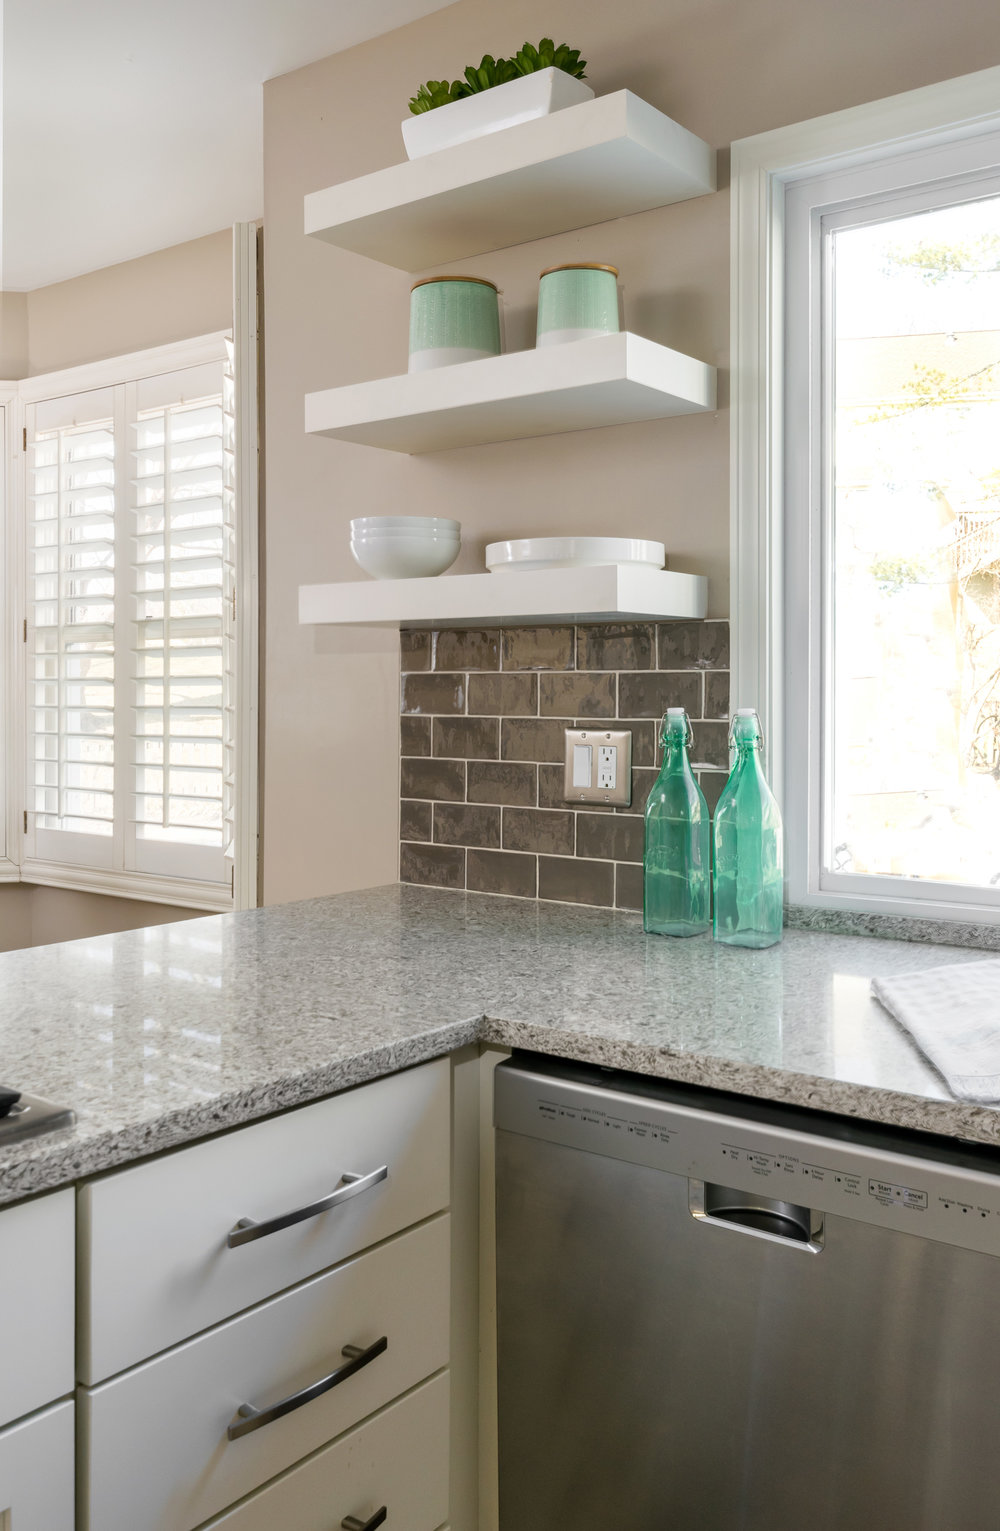 Kitchen Countertops and Modern Shelves